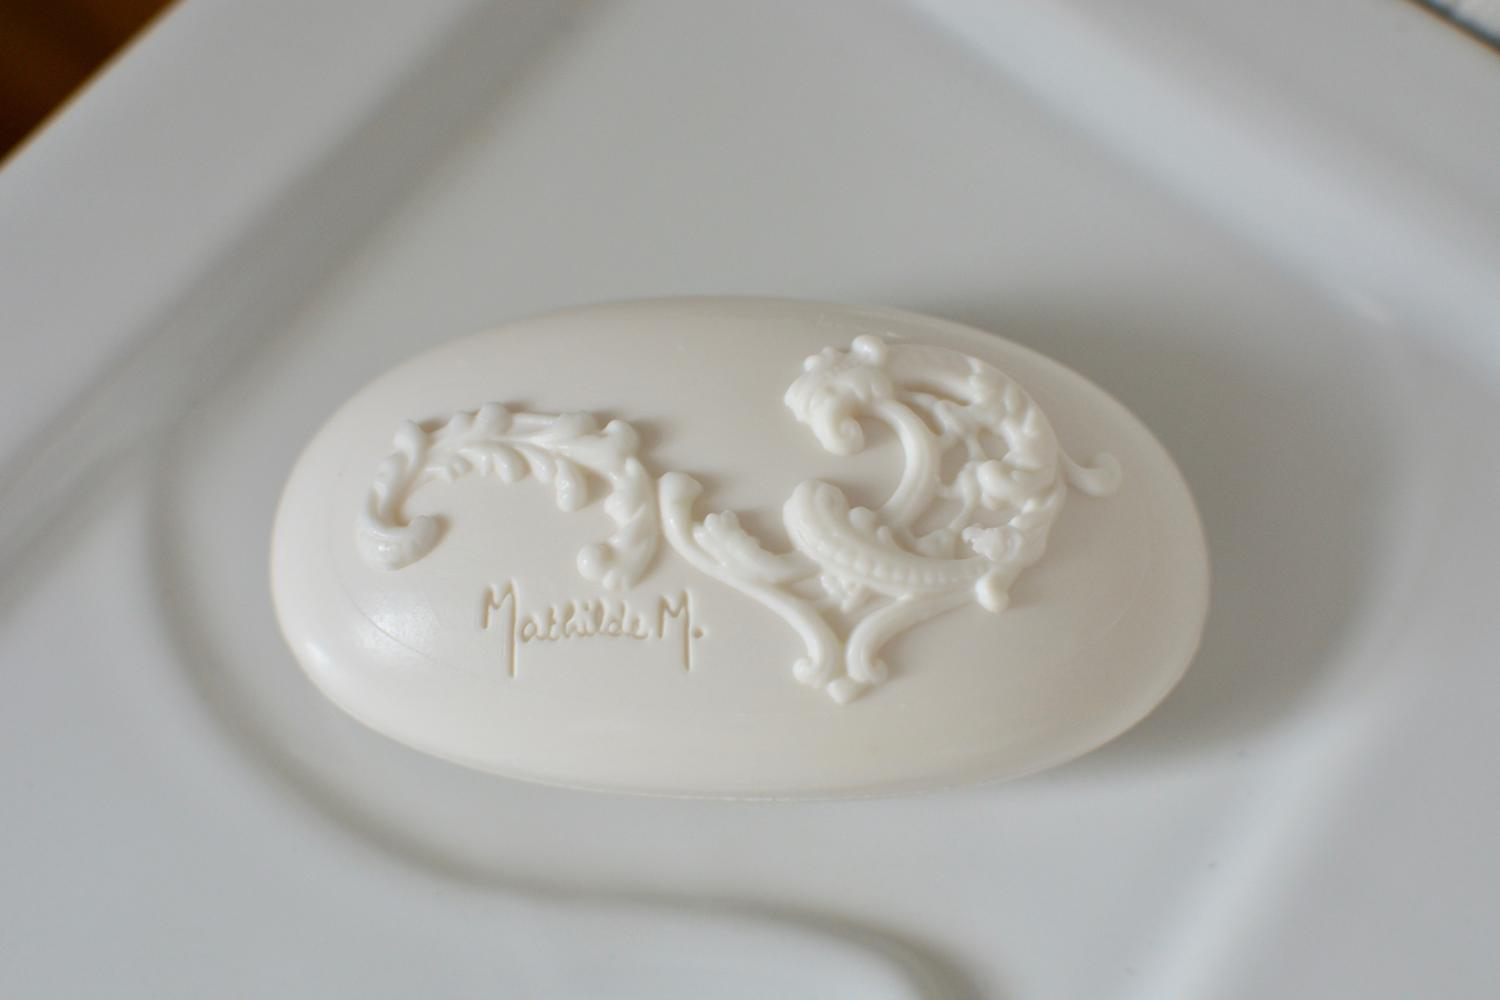 Mathilde M. Marquise Soap Bar